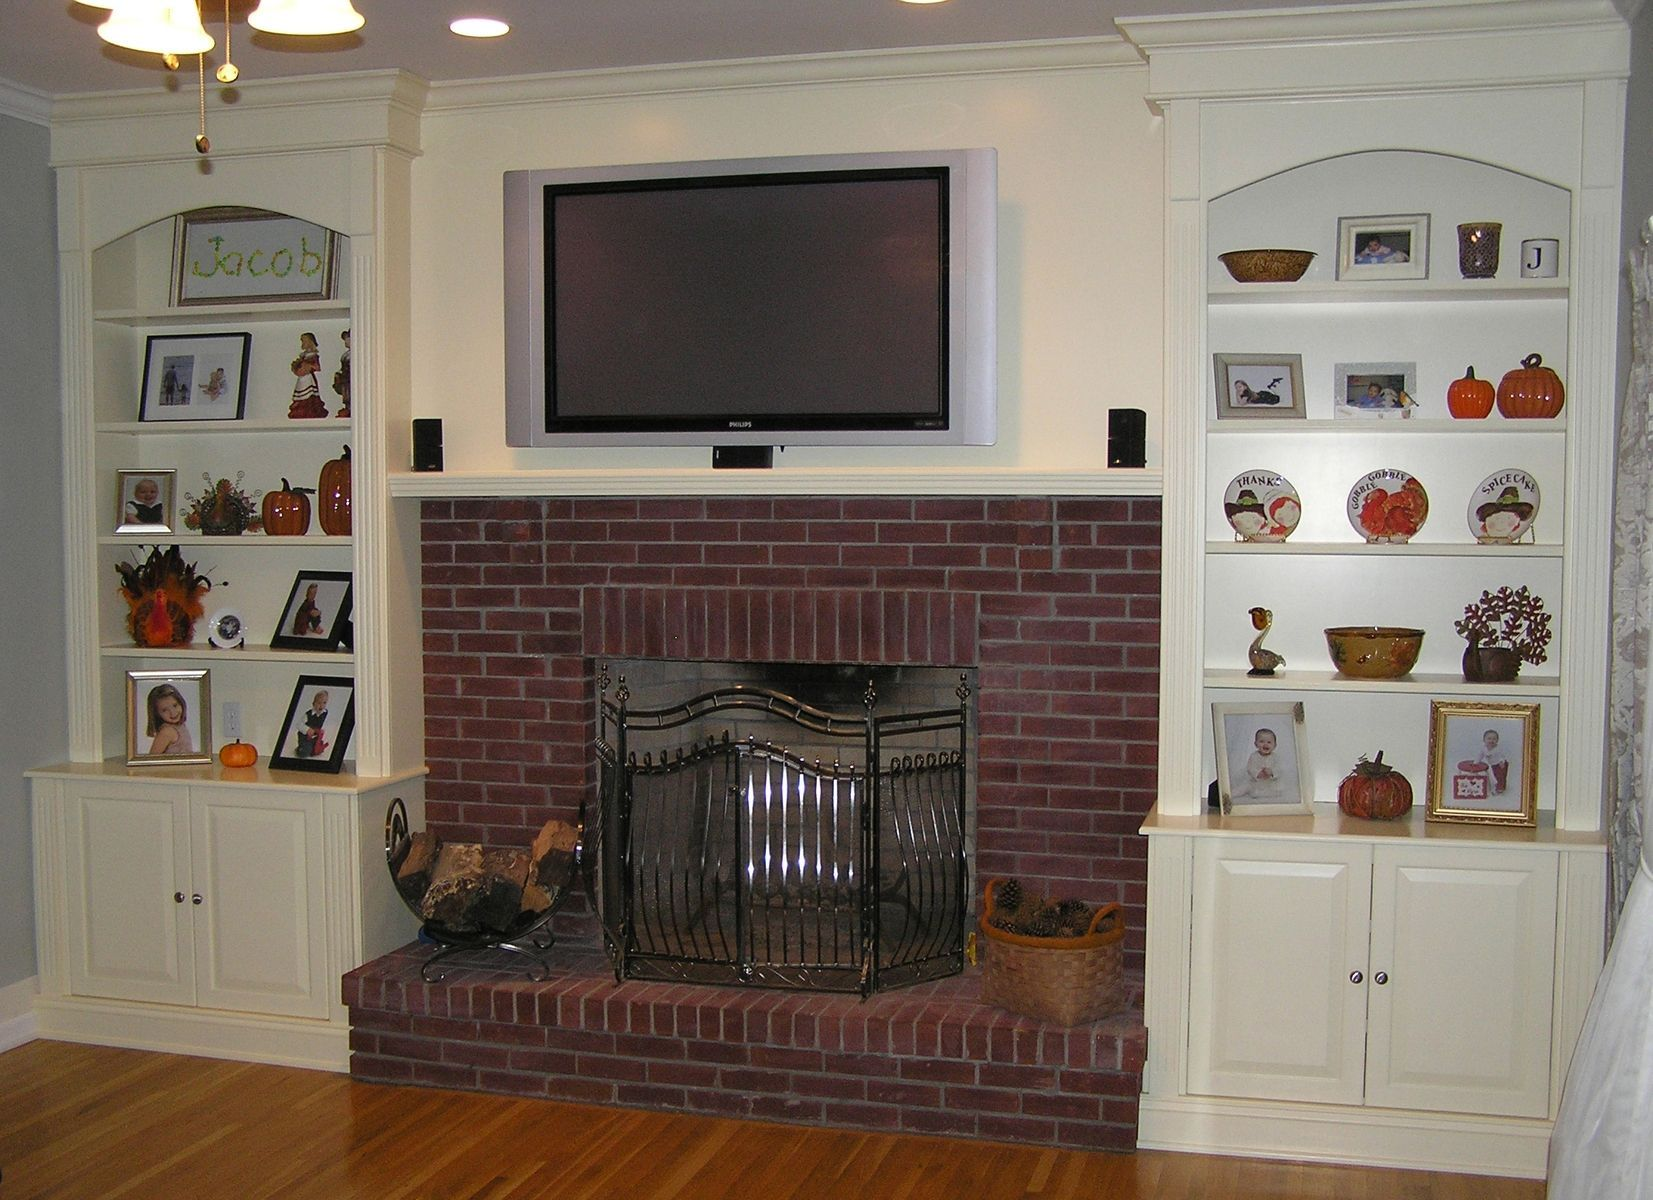 Fireplace With Bookshelves On Each Side Fireplace Bookcases - Fireplace with bookshelves